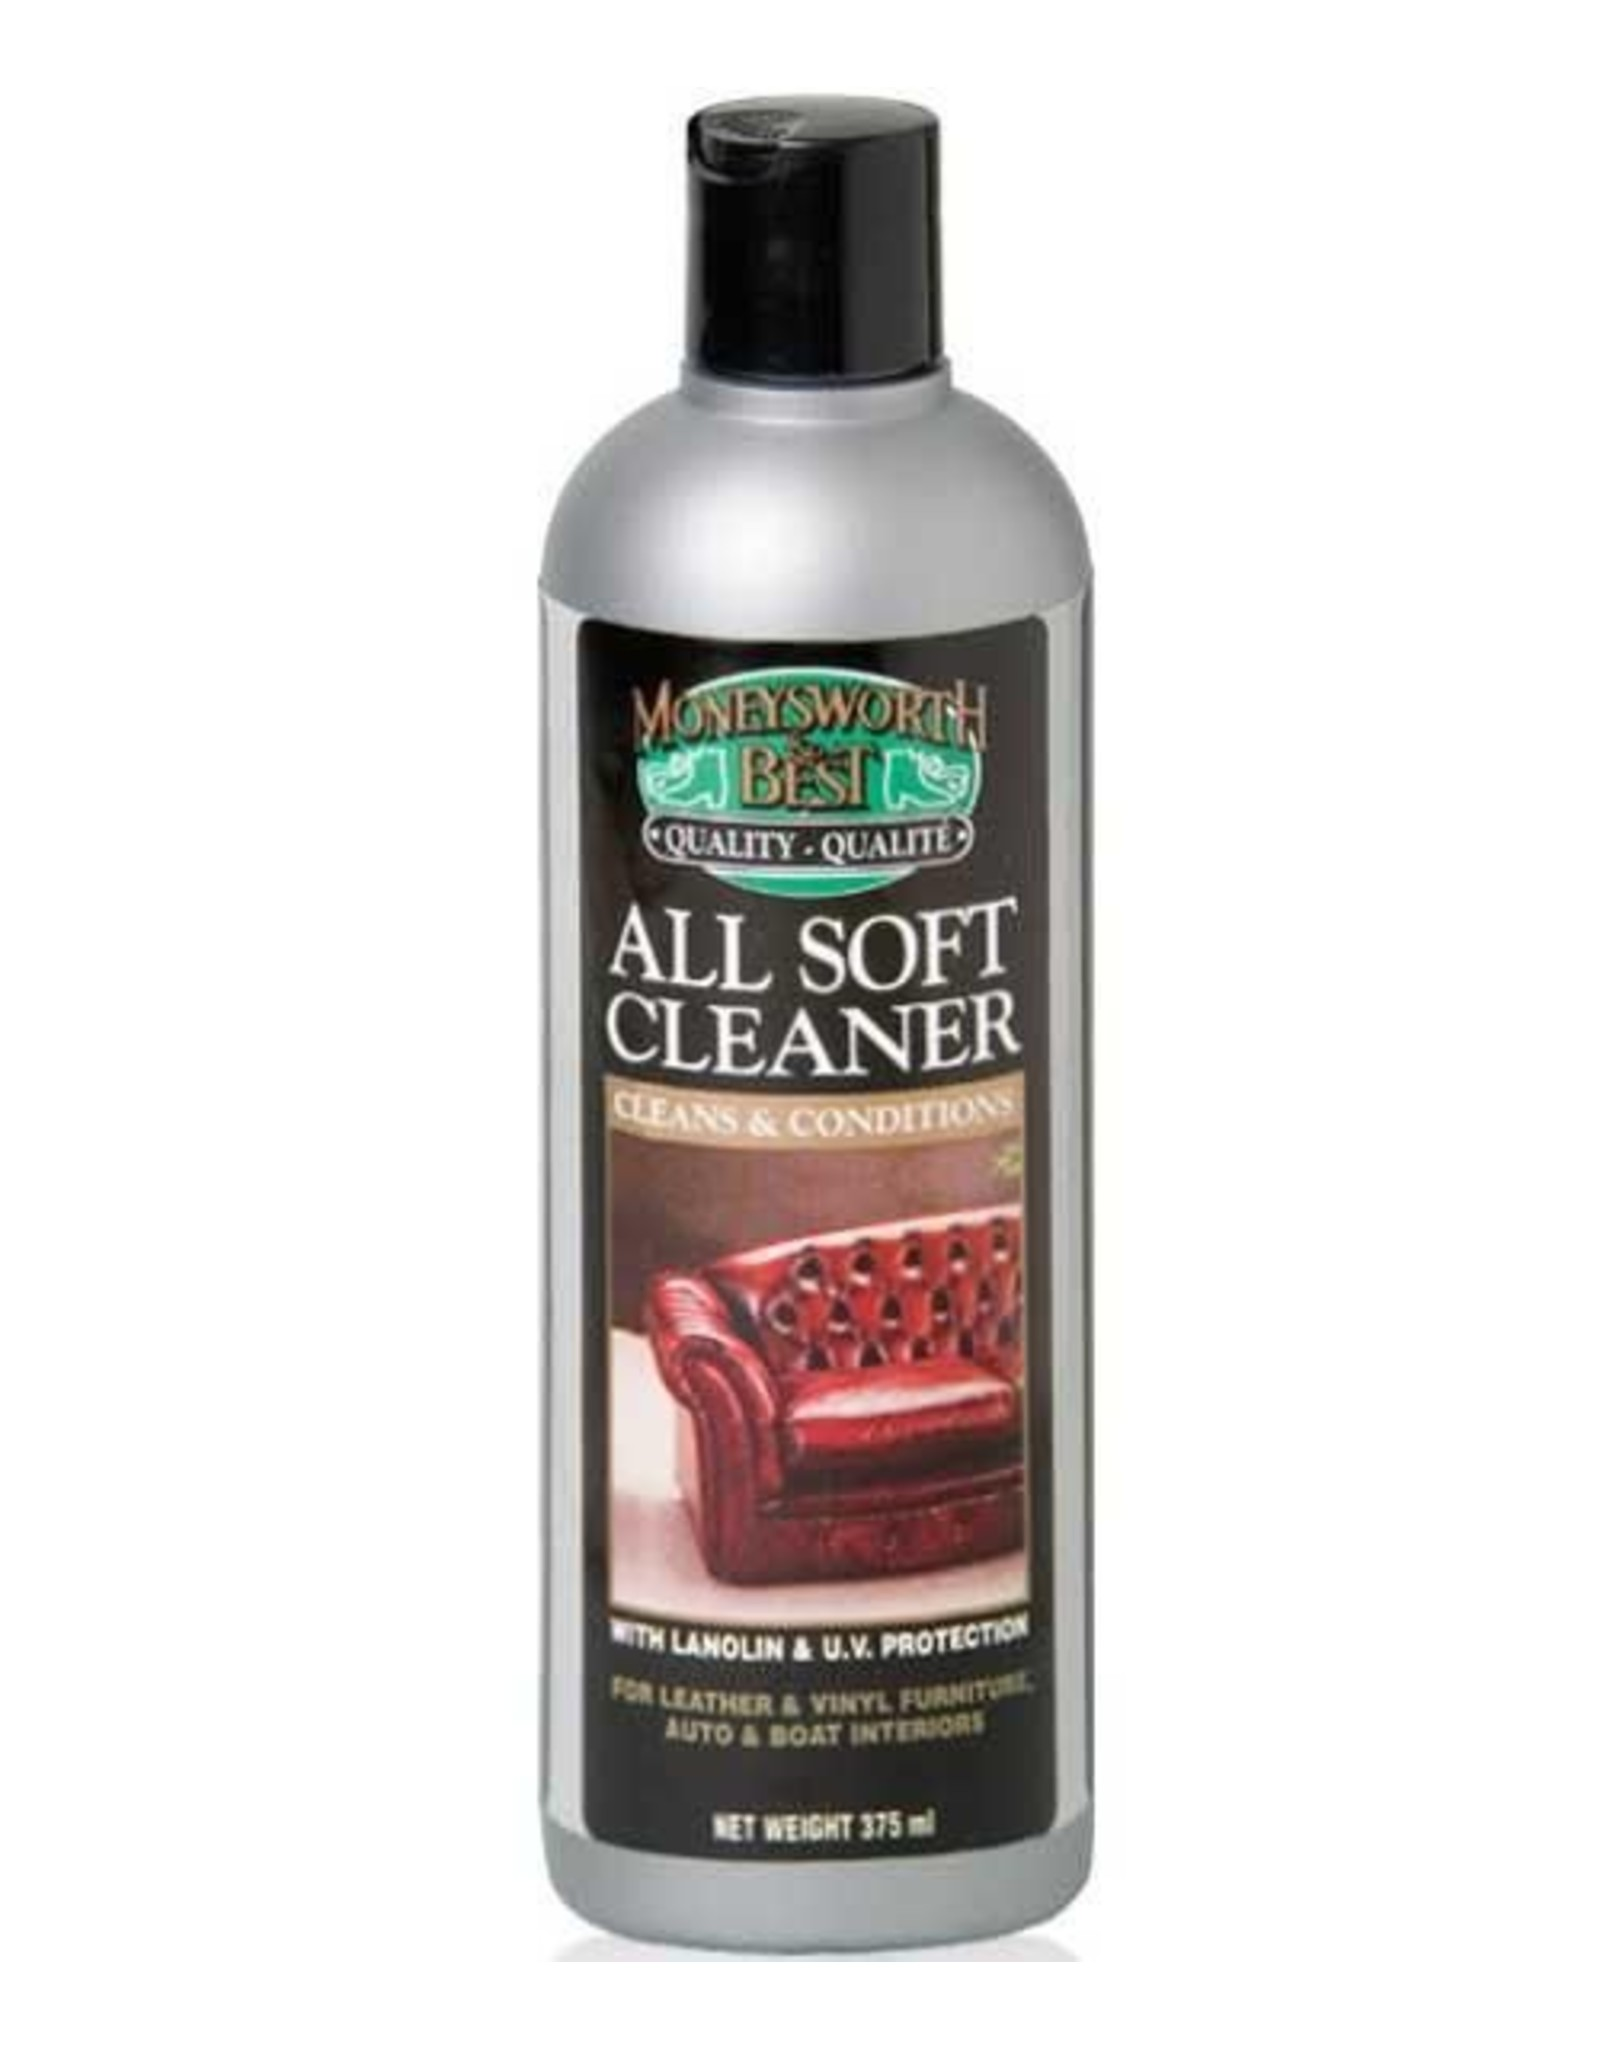 ALL SOFT Cleaner - Cleans & Conditions